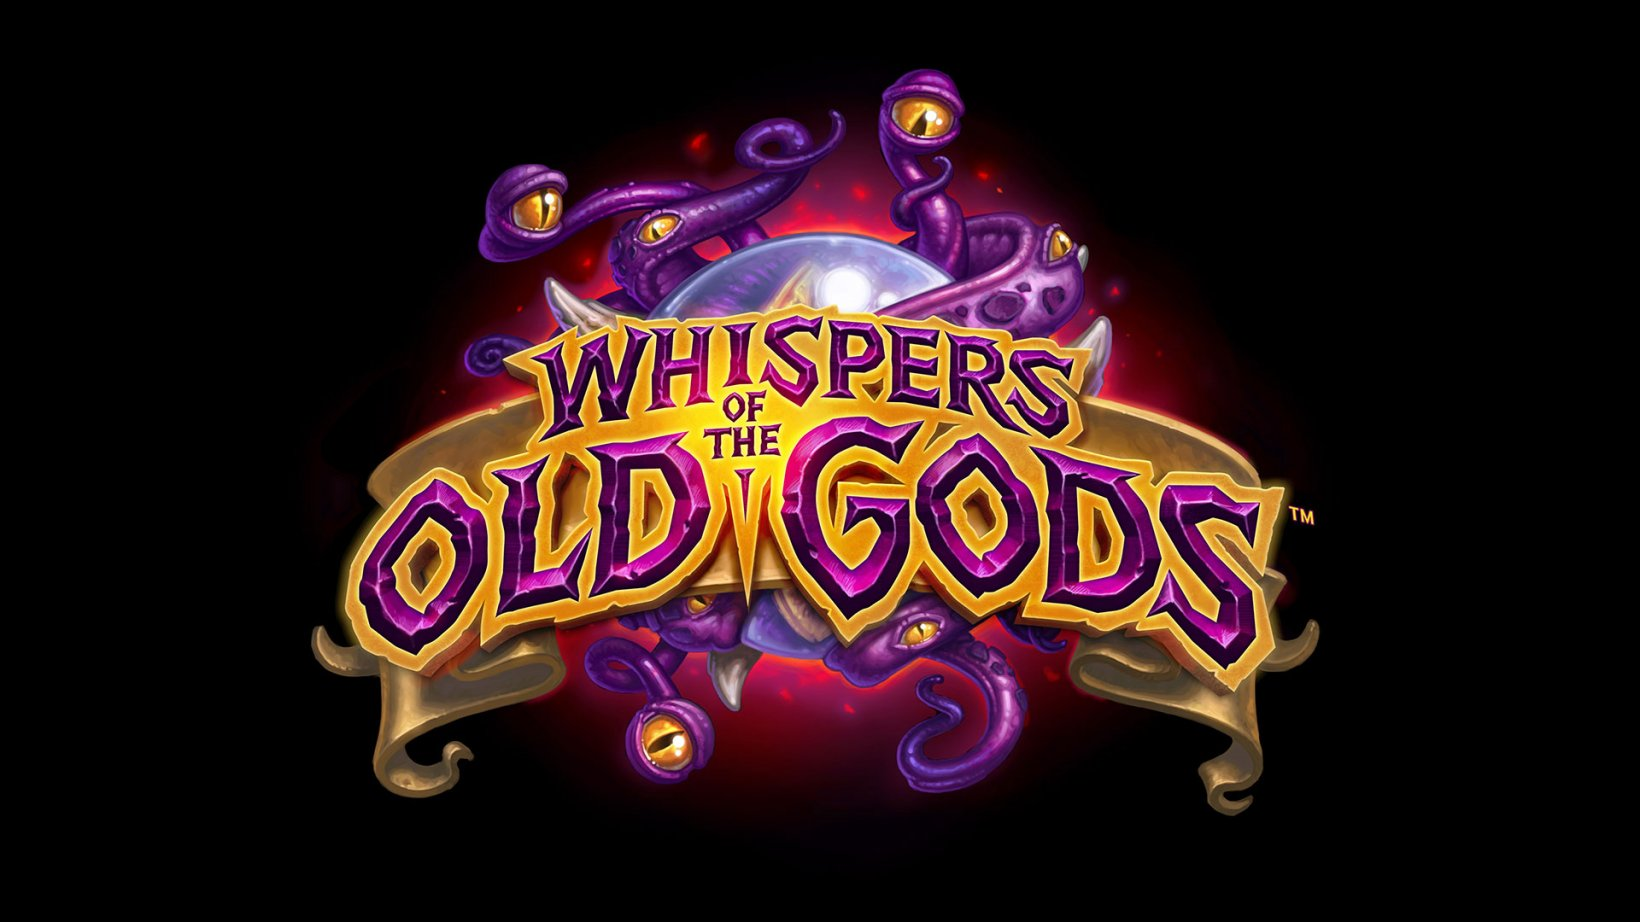 Hearthstone: Whispers of the Old Gods deckbuilding guide